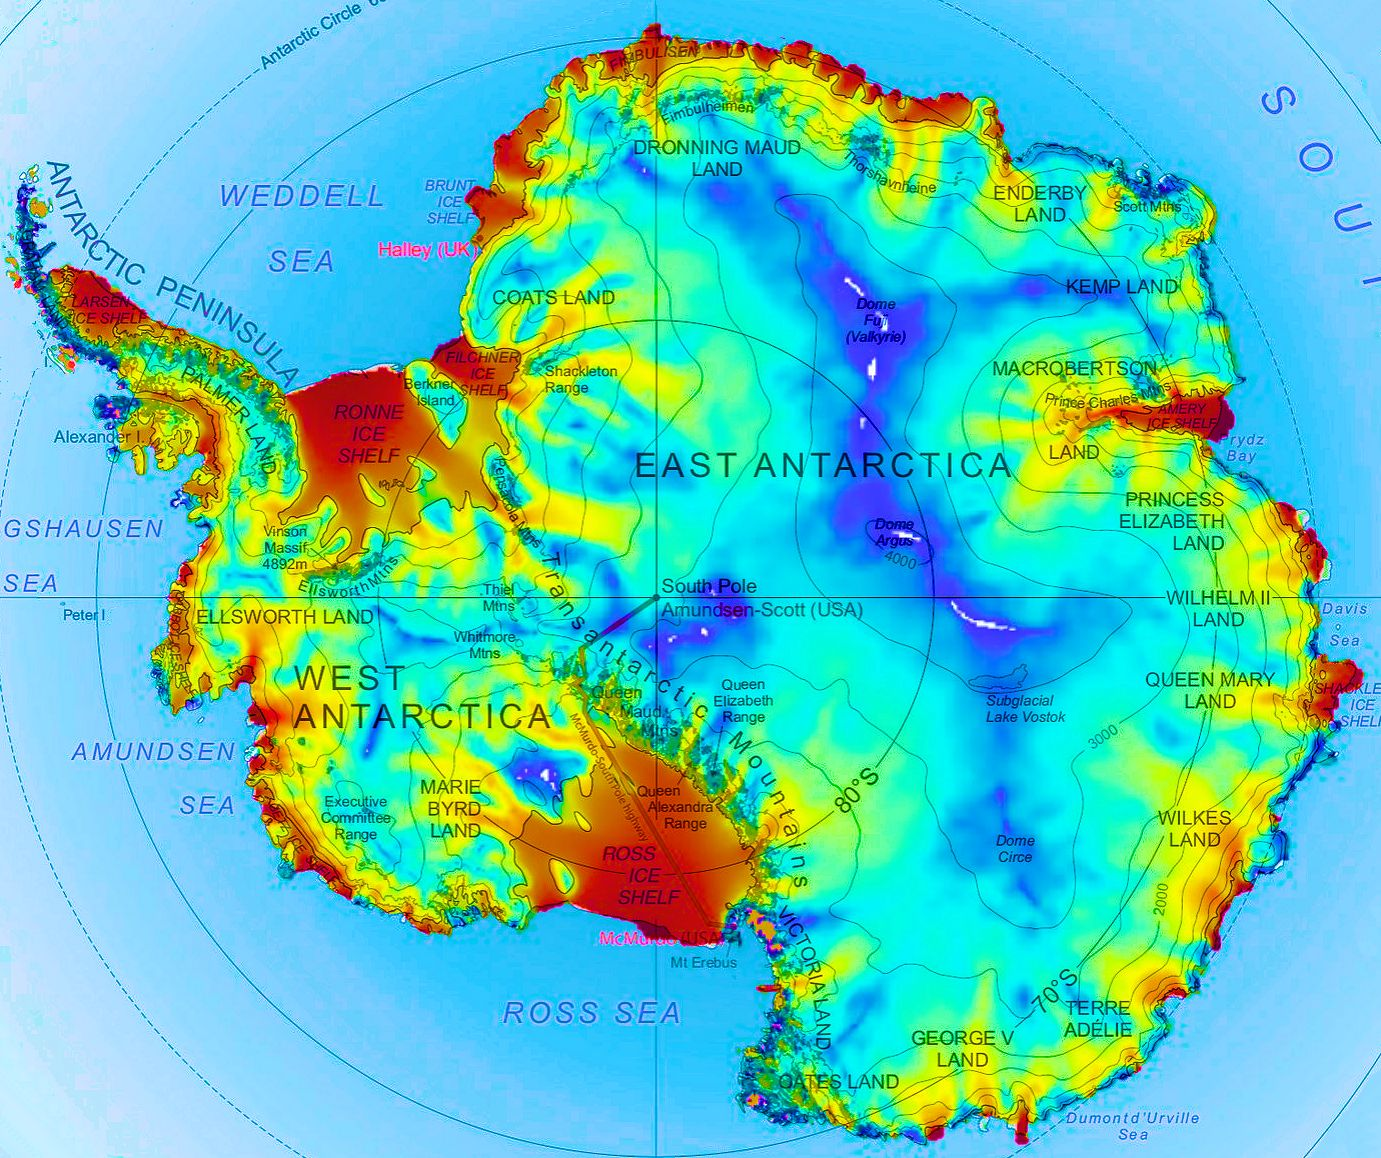 Extraction of blue ice area in antarctica